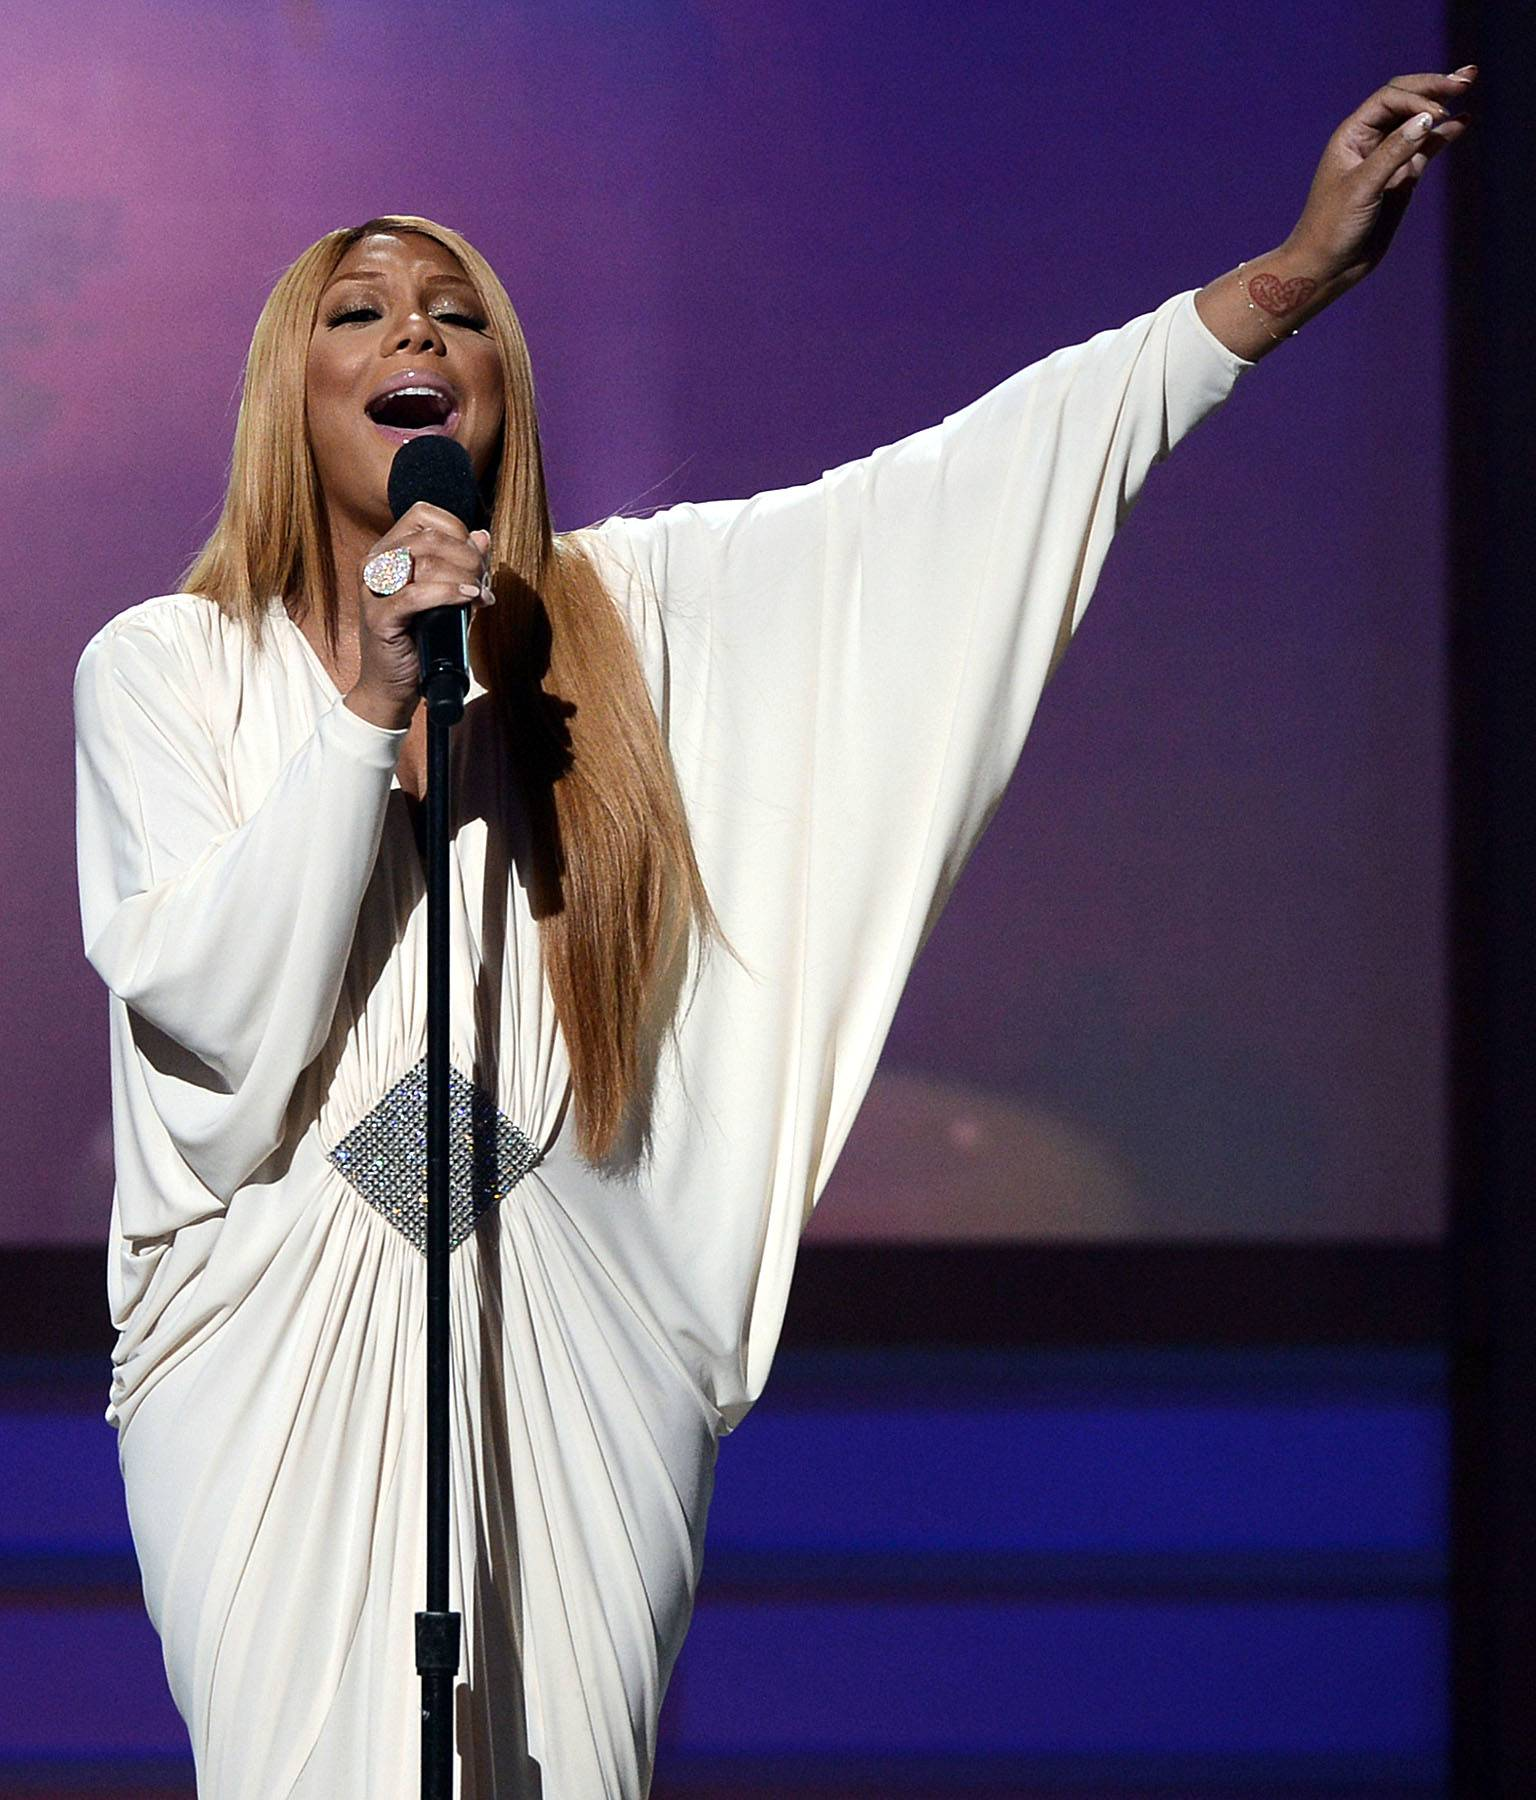 Best R&B/Soul Female Artist: Tamar Braxton - The powerhouse R&B vocalist proved she wasn't just Toni Braxton's baby sister.(Photo: Kevin Winter/Getty Images for BET)